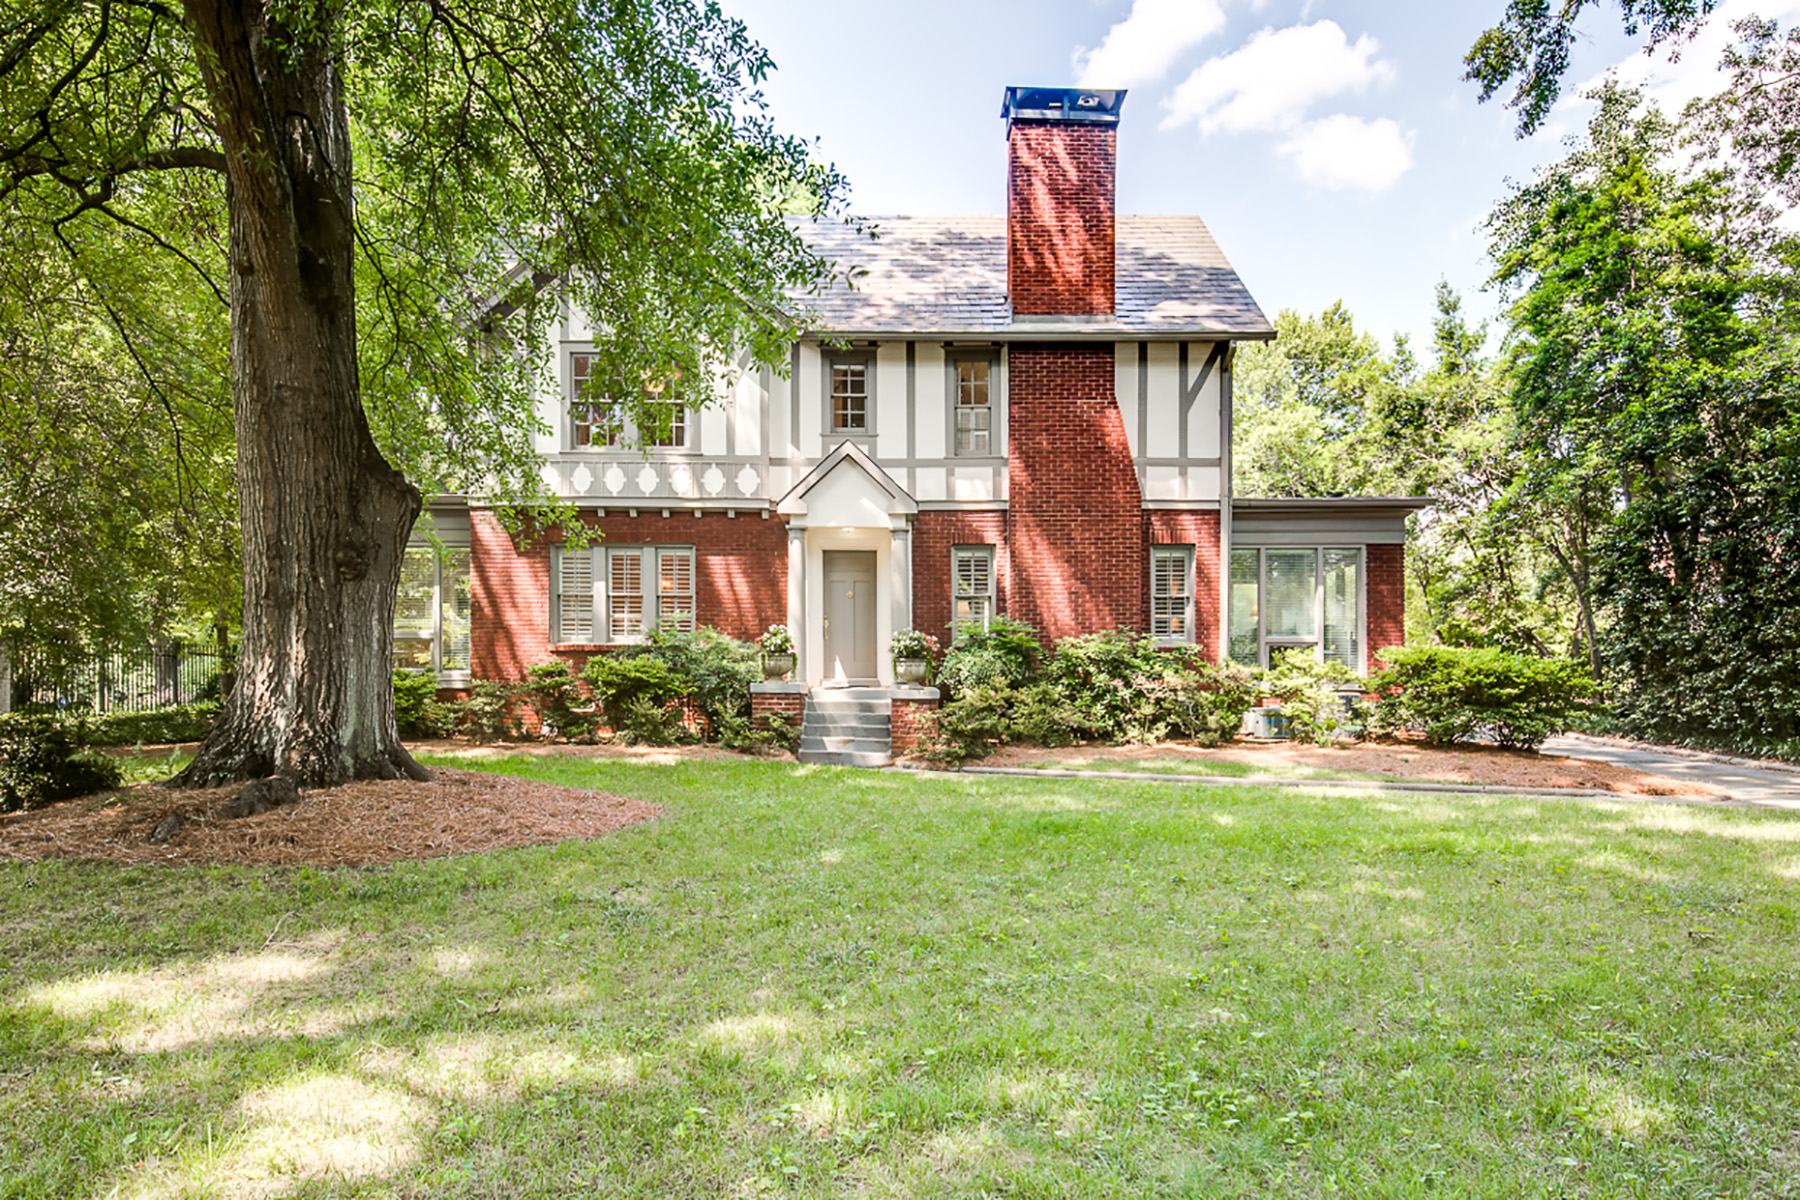 Single Family Home for Sale at This Winsome 1929 Tudor Will Captivate You With Its Architectural Charm 1338 N Decatur Road NE Atlanta, Georgia 30306 United States